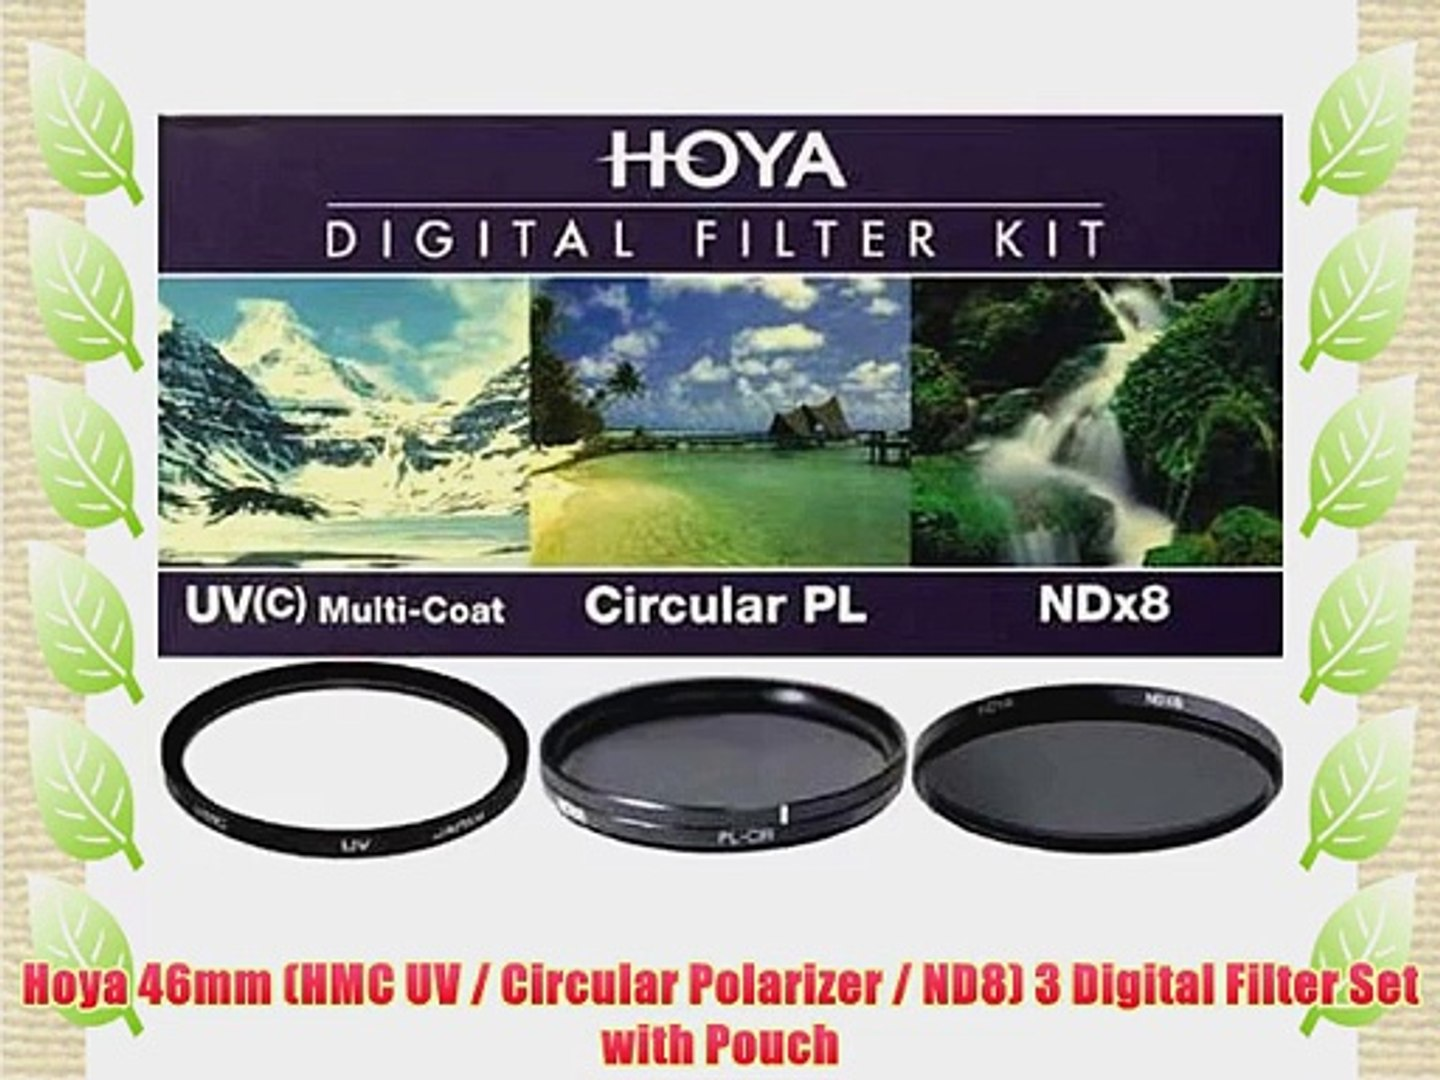 ND8 3 Digital Filter Set with Pouch 55mm Circular Polarizer Hoya 55mm HMC UV